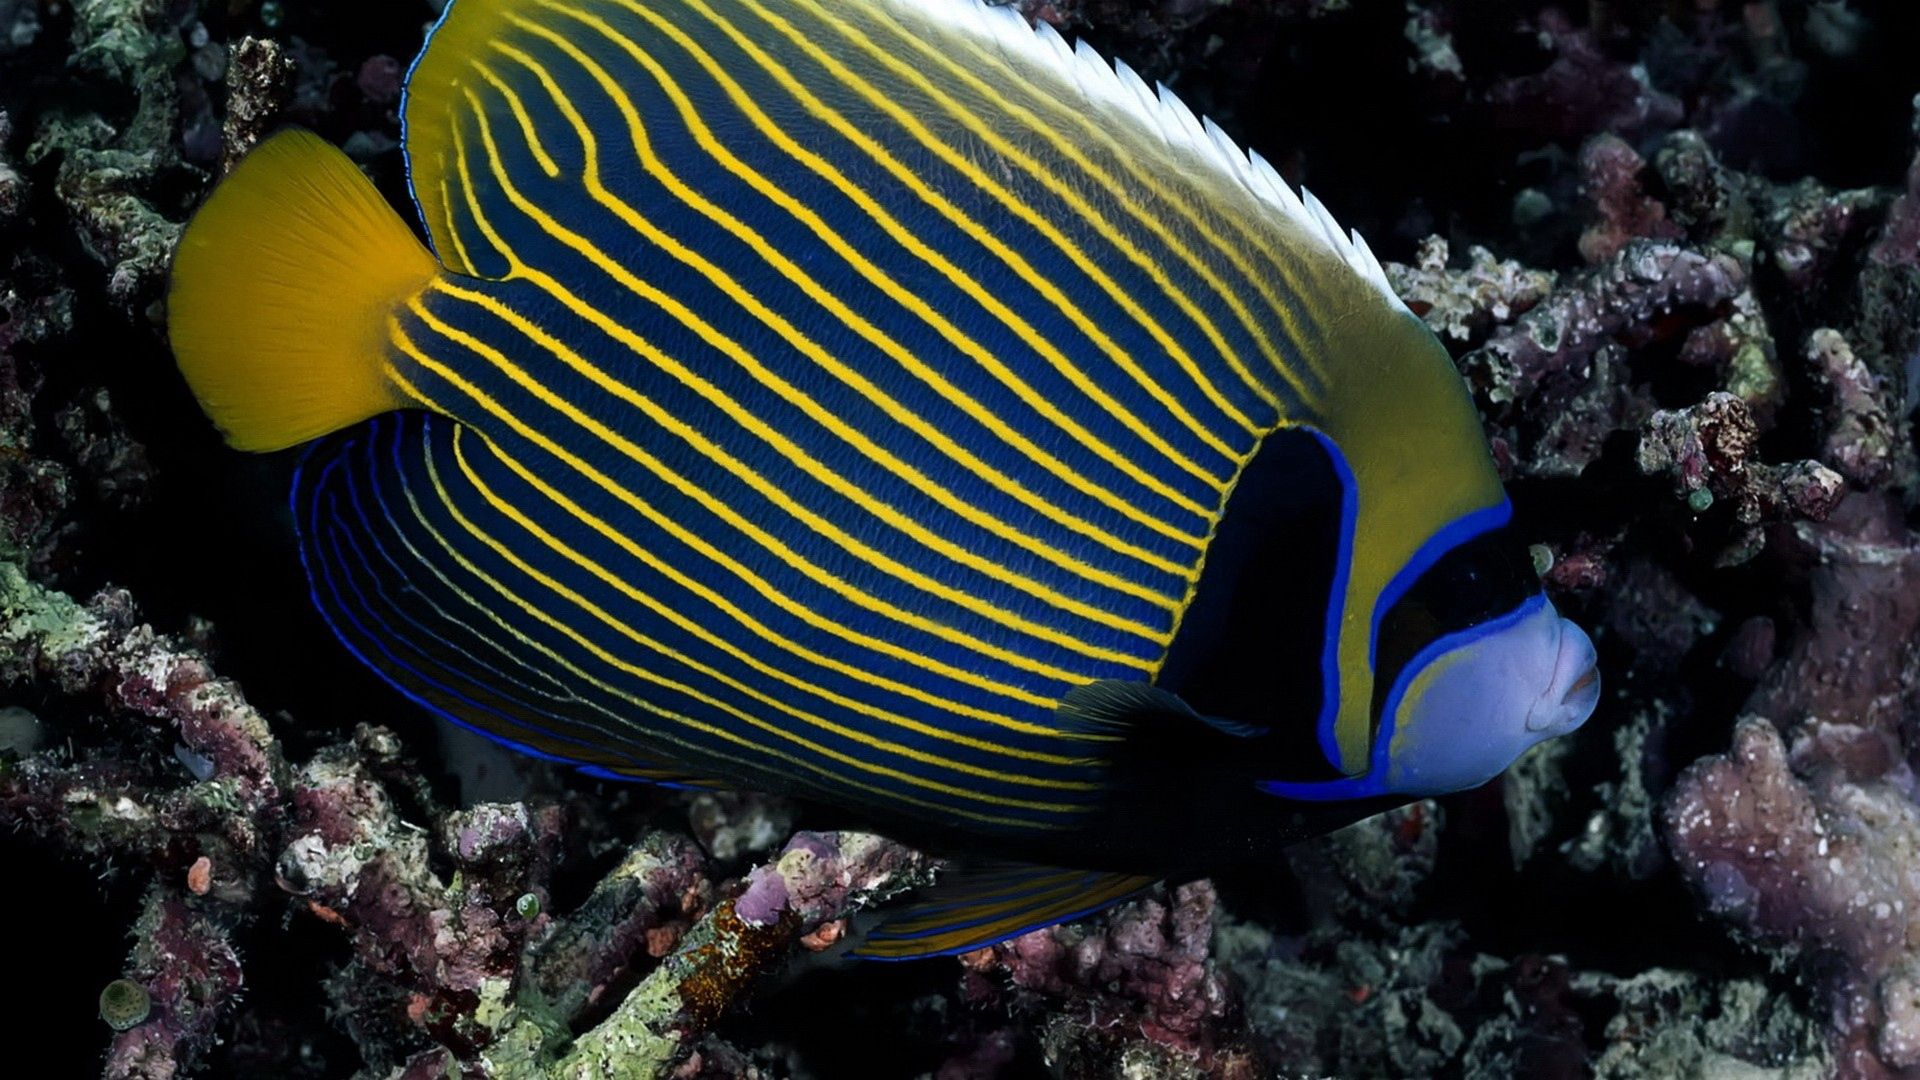 94250 download wallpaper Animals, Fish, To Swim, Swim, Striped screensavers and pictures for free